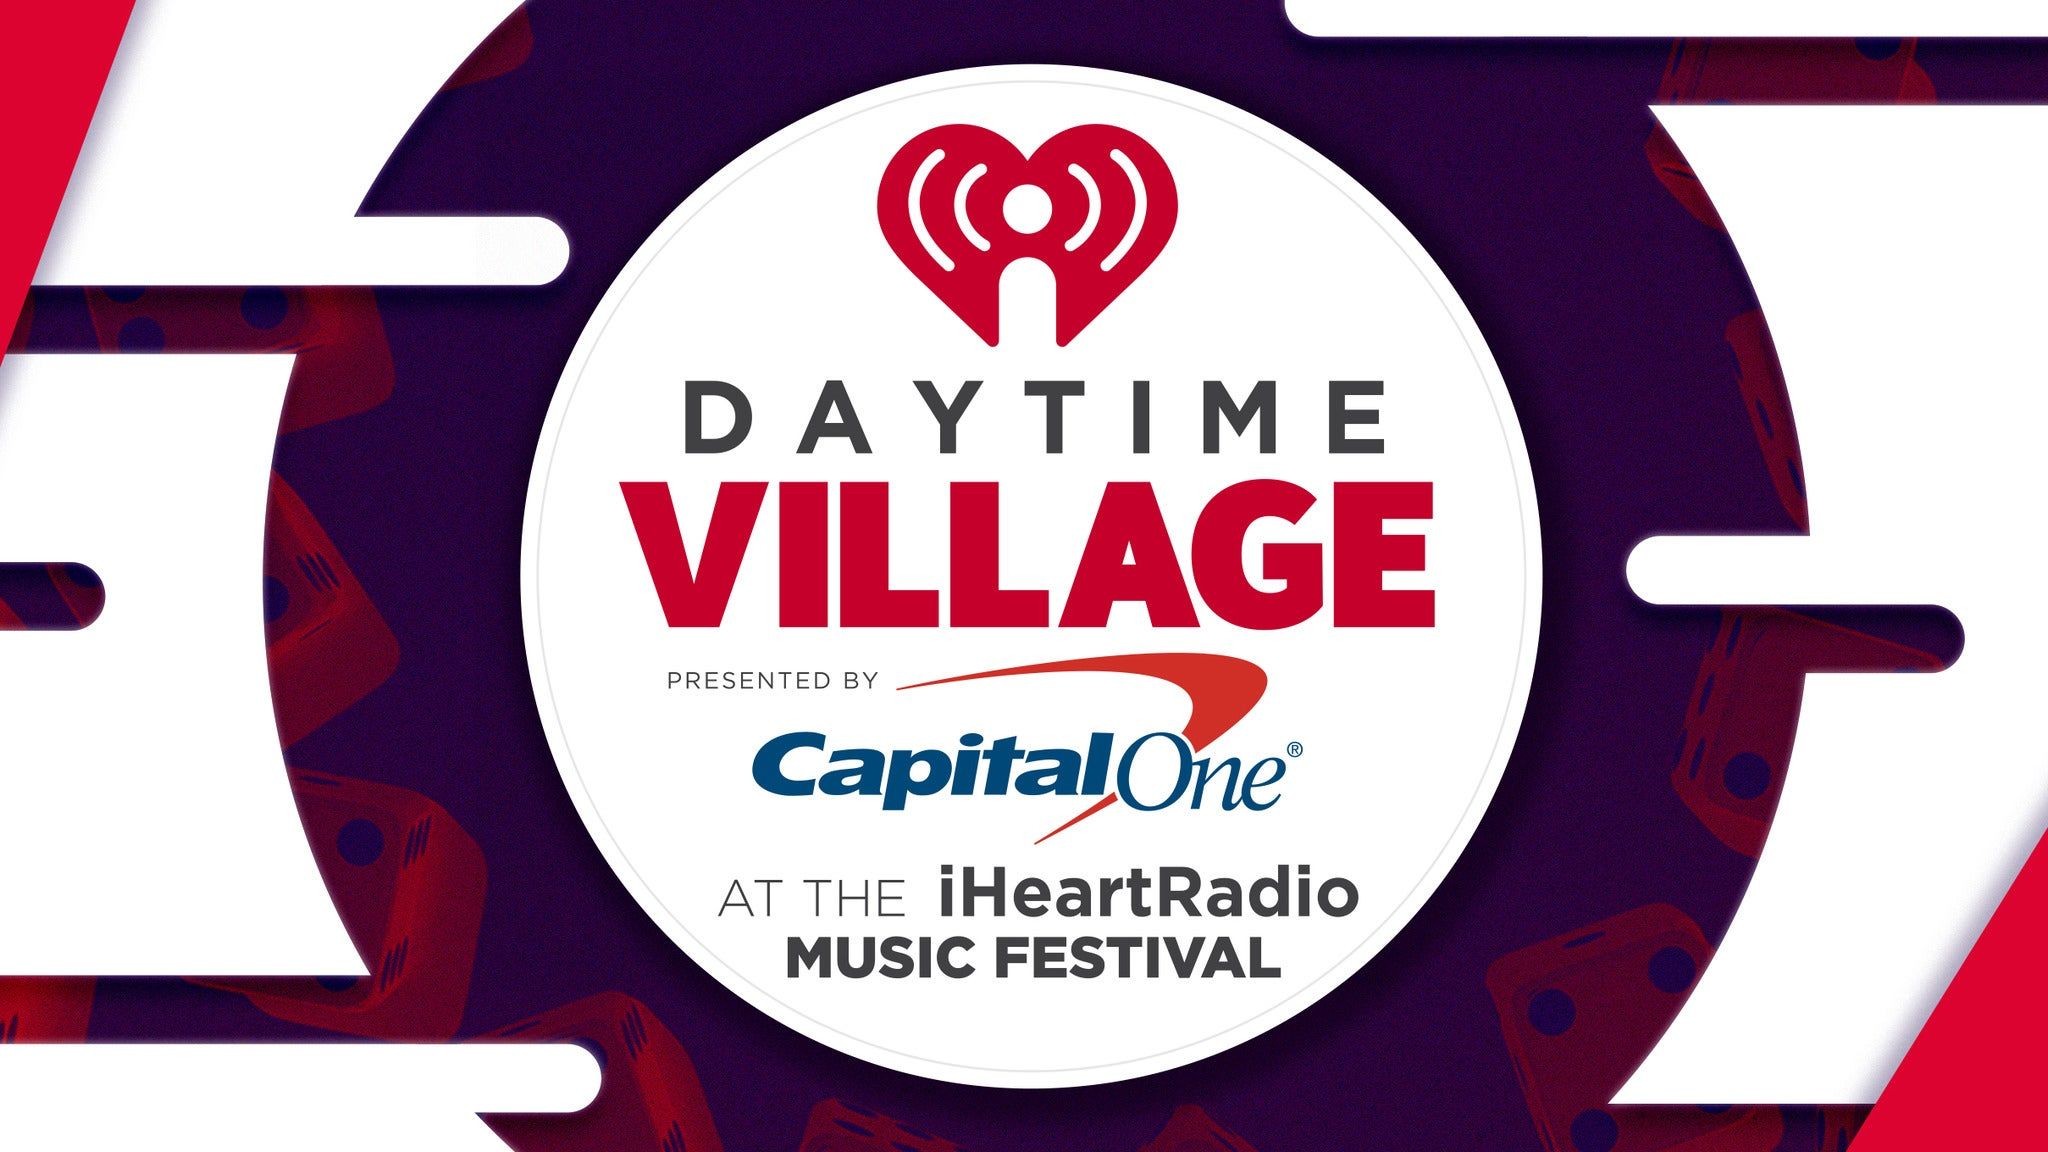 Daytime Village presented by Capital One at the iHeartRadio Music Fest